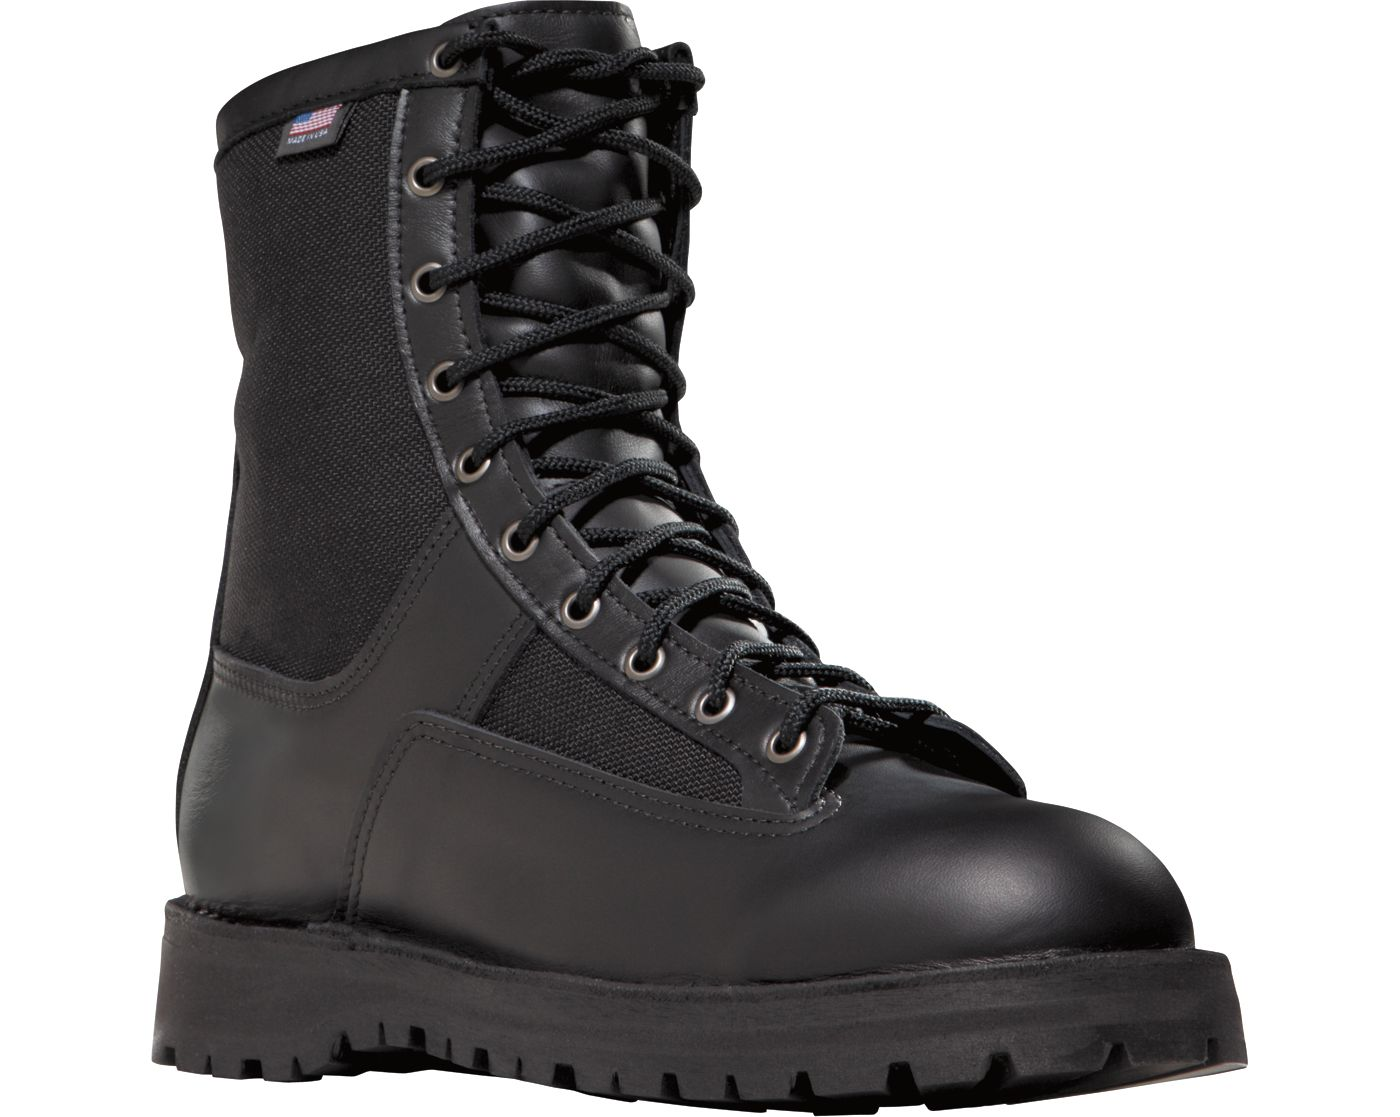 Danner Men's Acadia 8'' Waterproof Composite Toe Work Boots